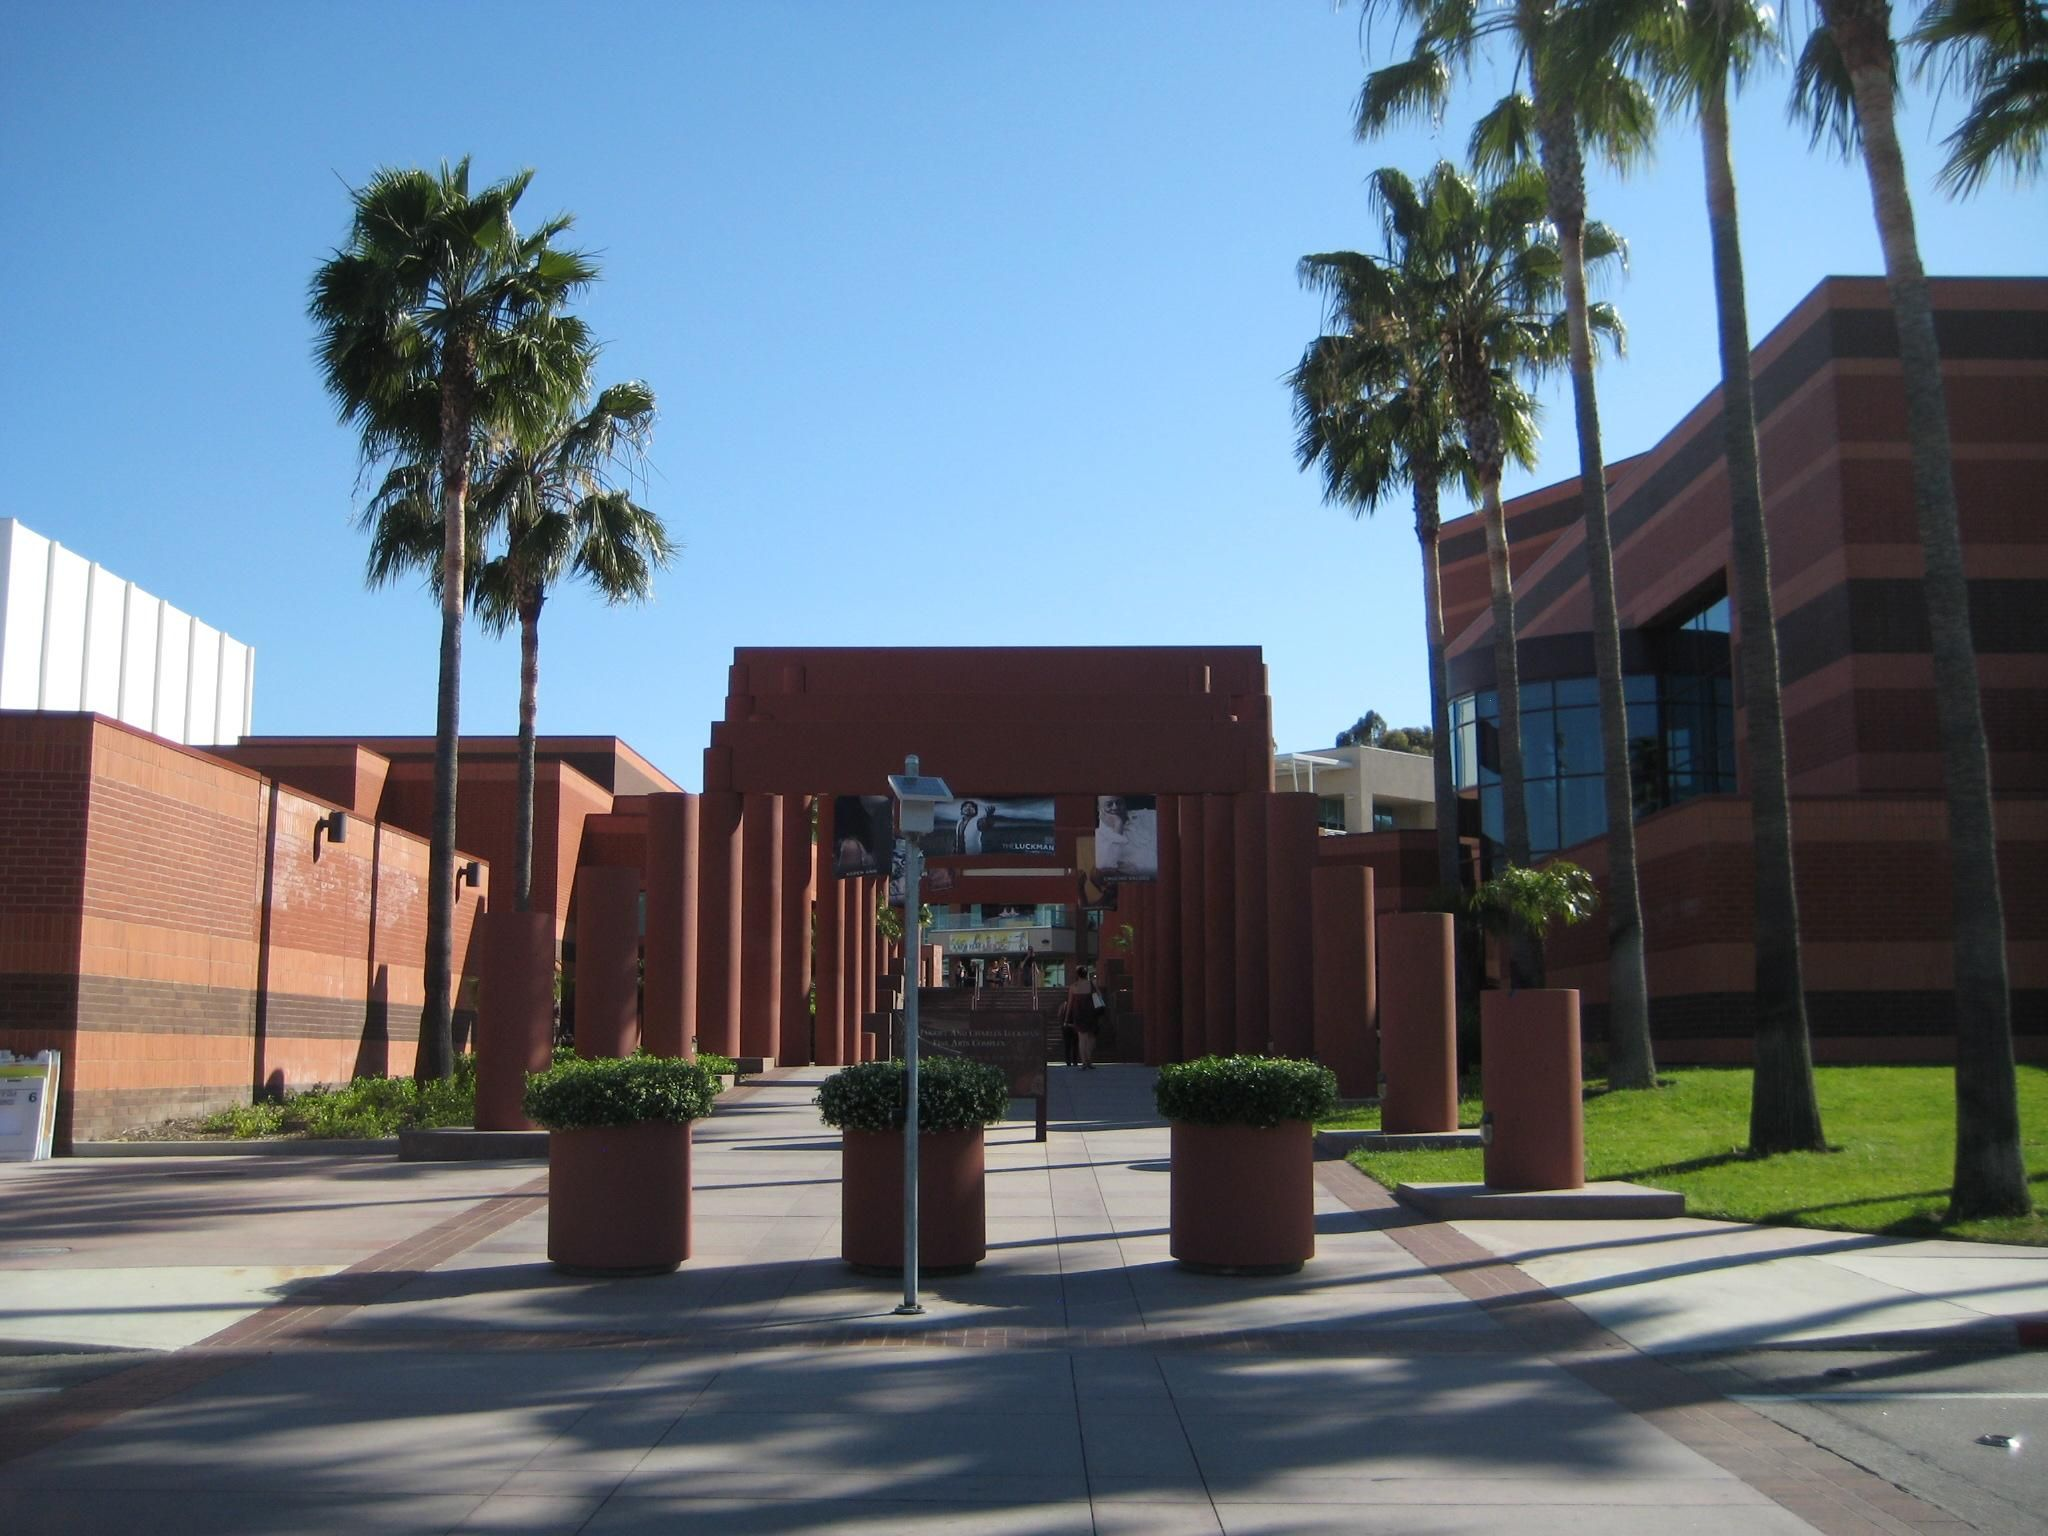 California State University Los Angeles Ca For More Information Go To Www Ultimateuniversities Com California State University California